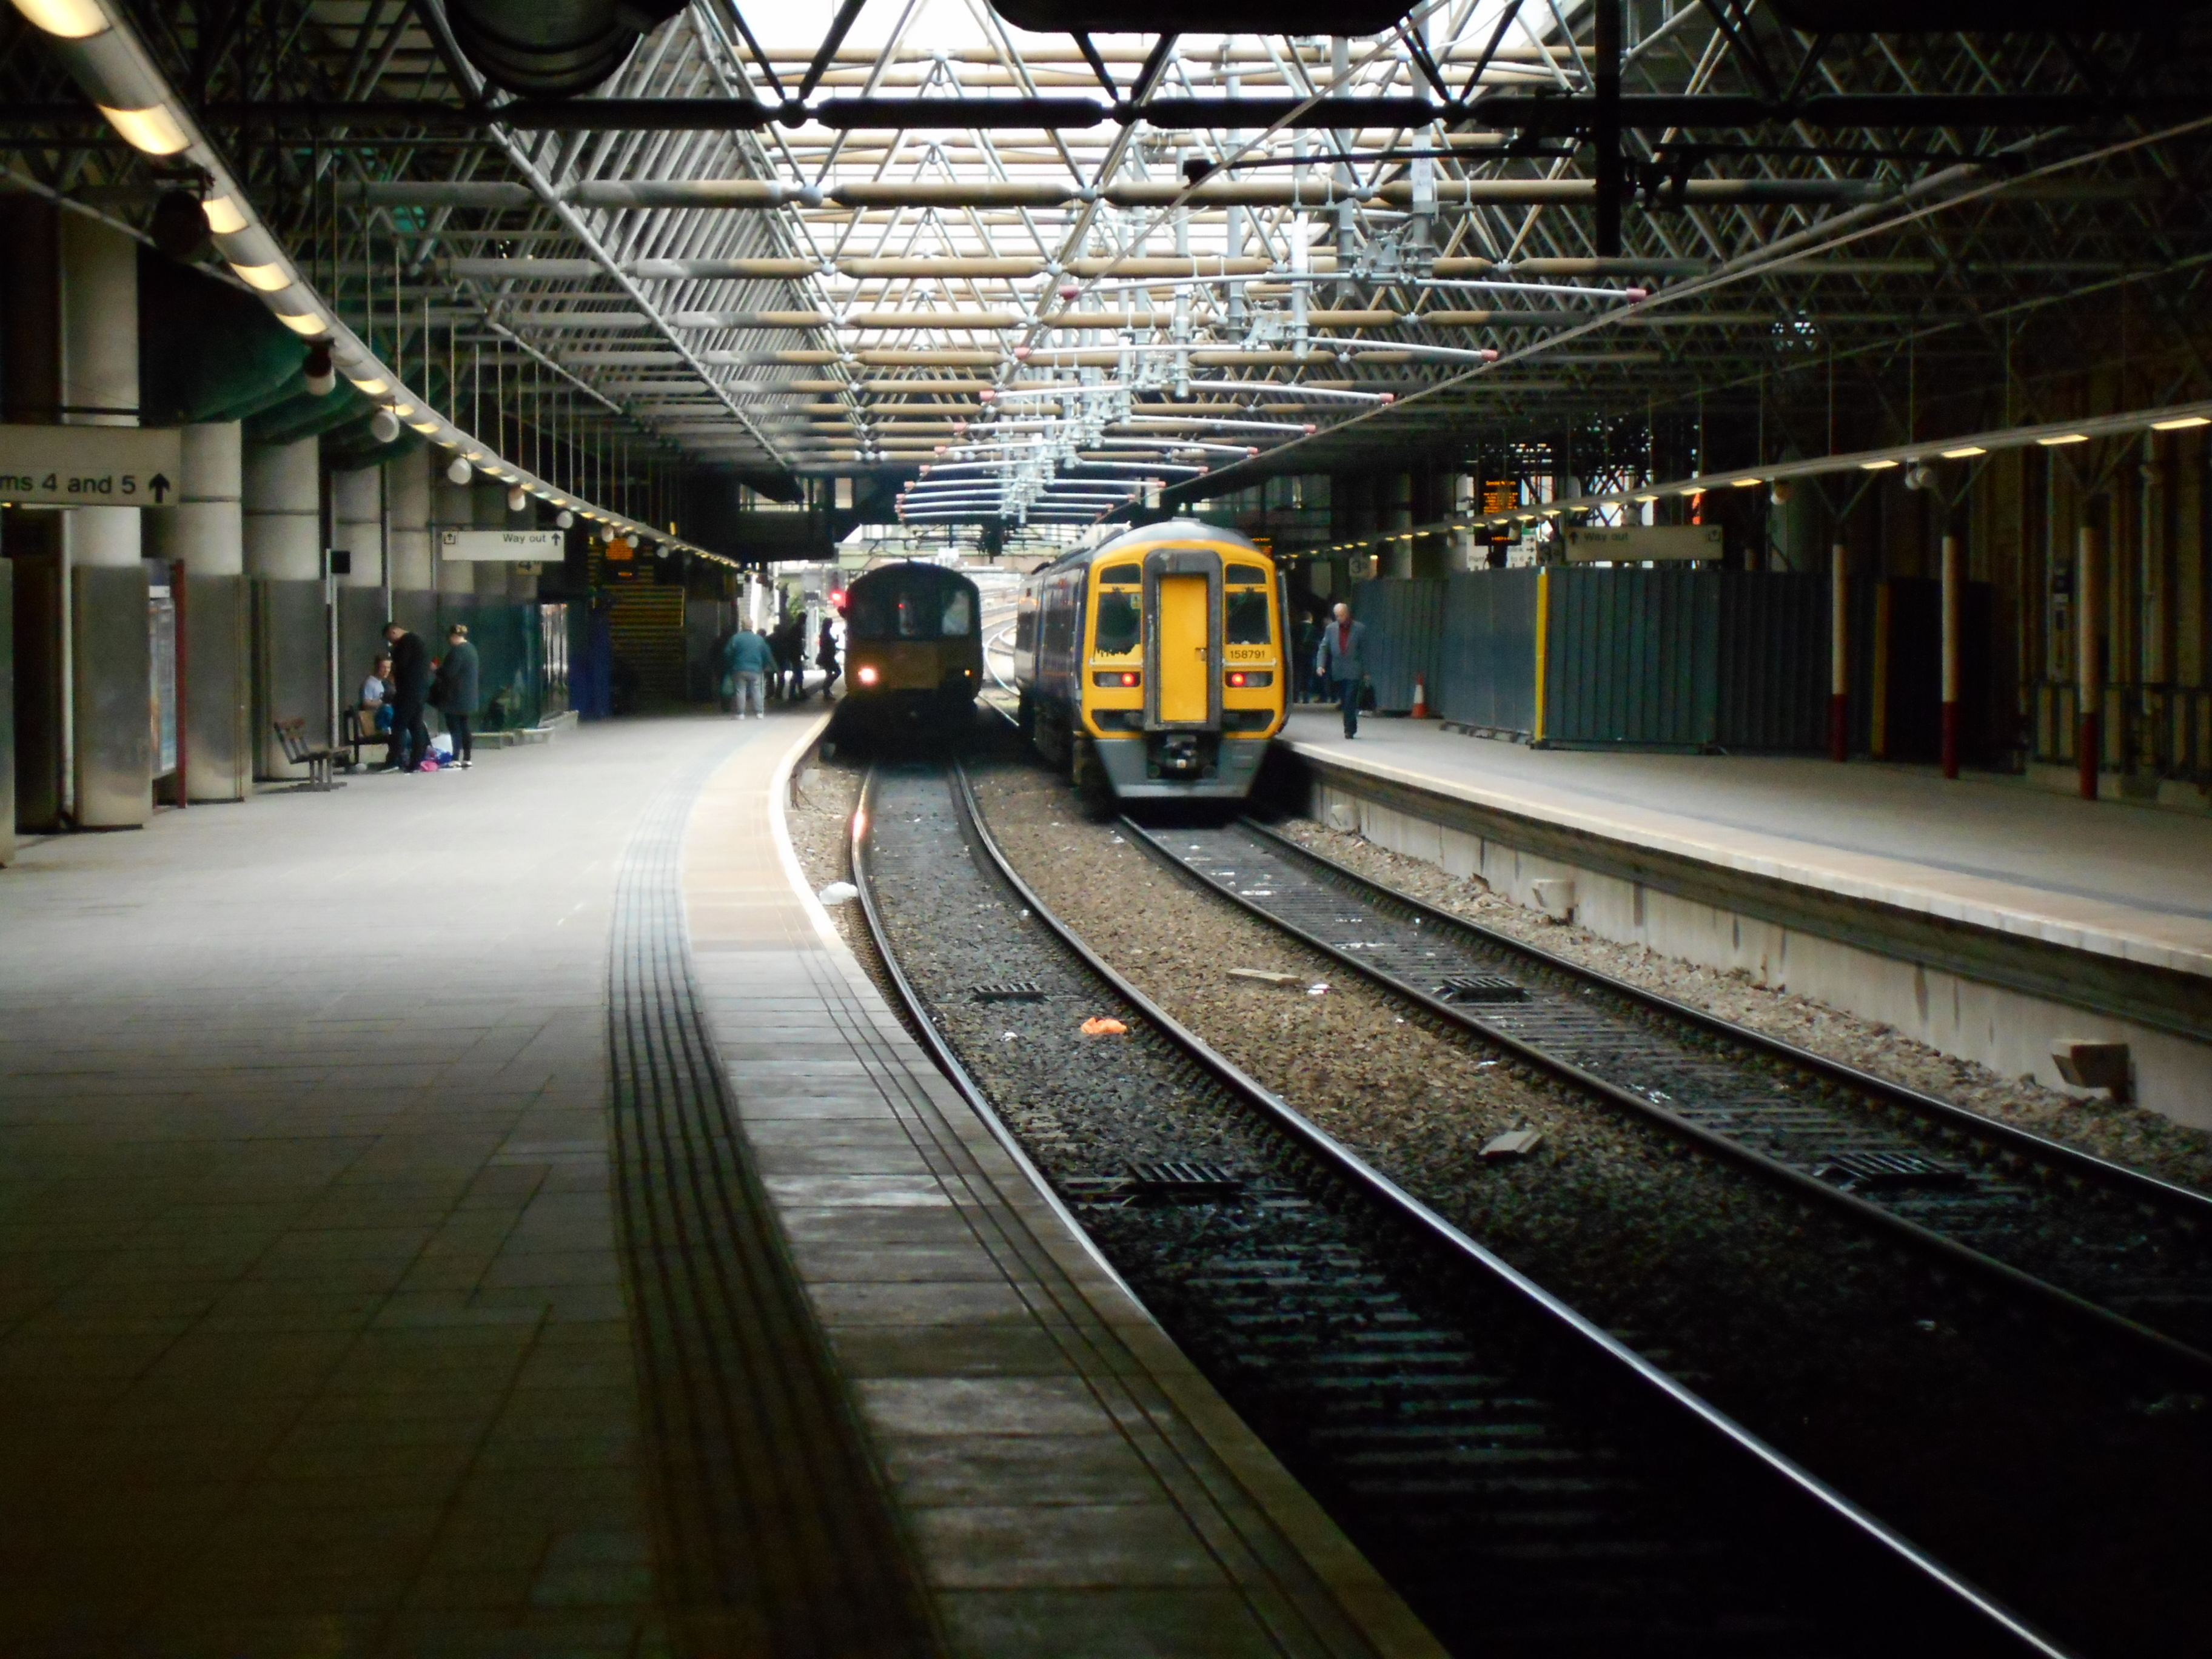 FileManchester Victoria Through Platforms.JPG - Wikimedia Commons